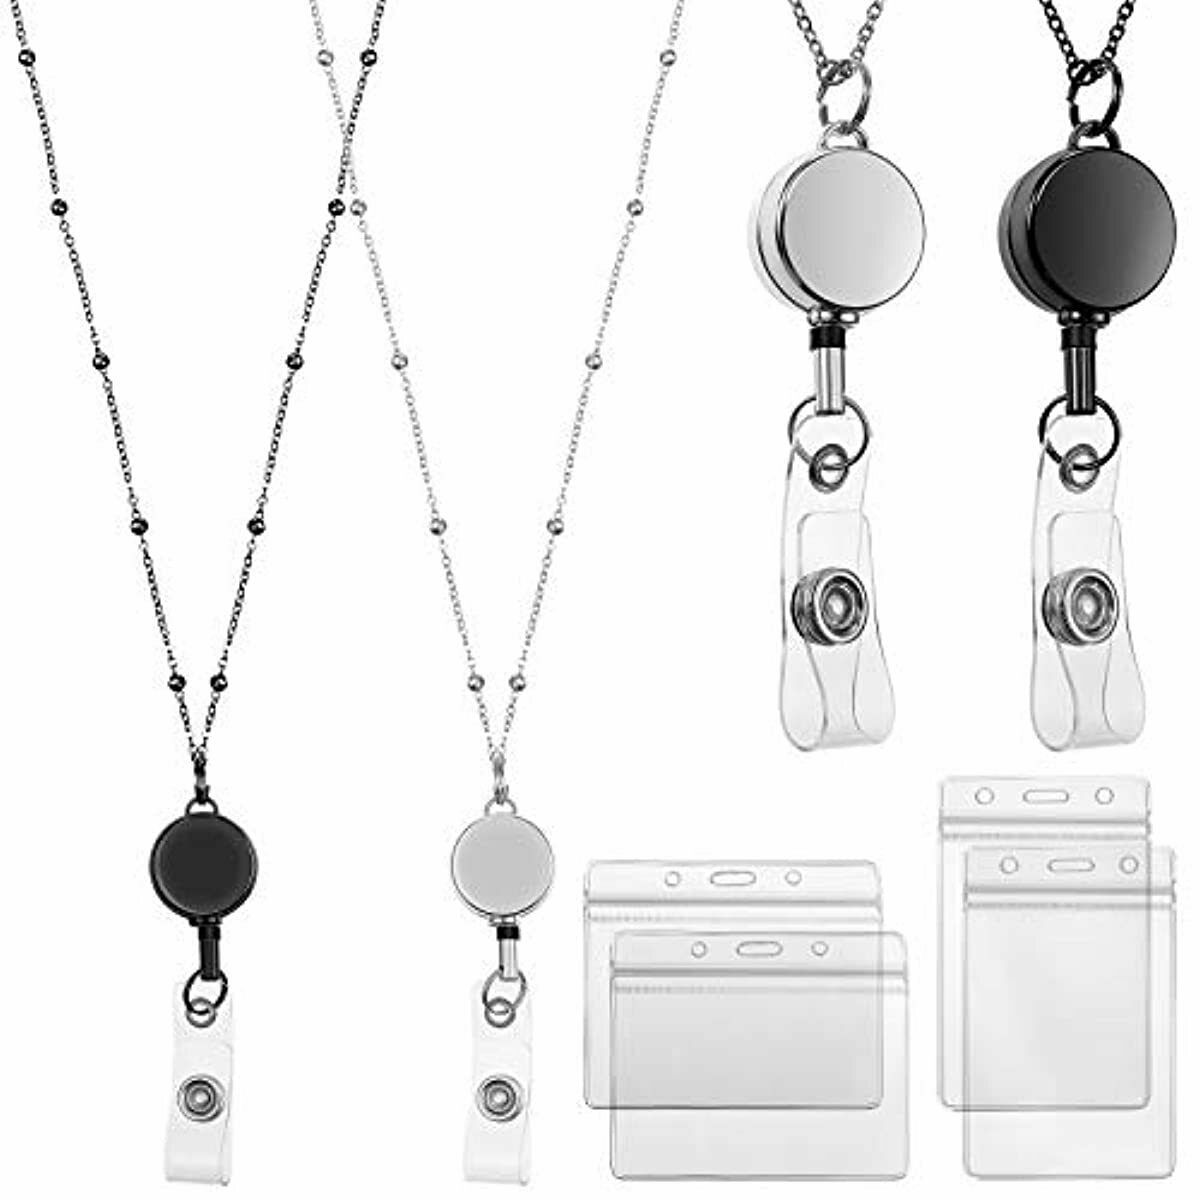 2 Pieces Retractable Badge Reel Lanyard with ID Holders Stainless Steel Necklace